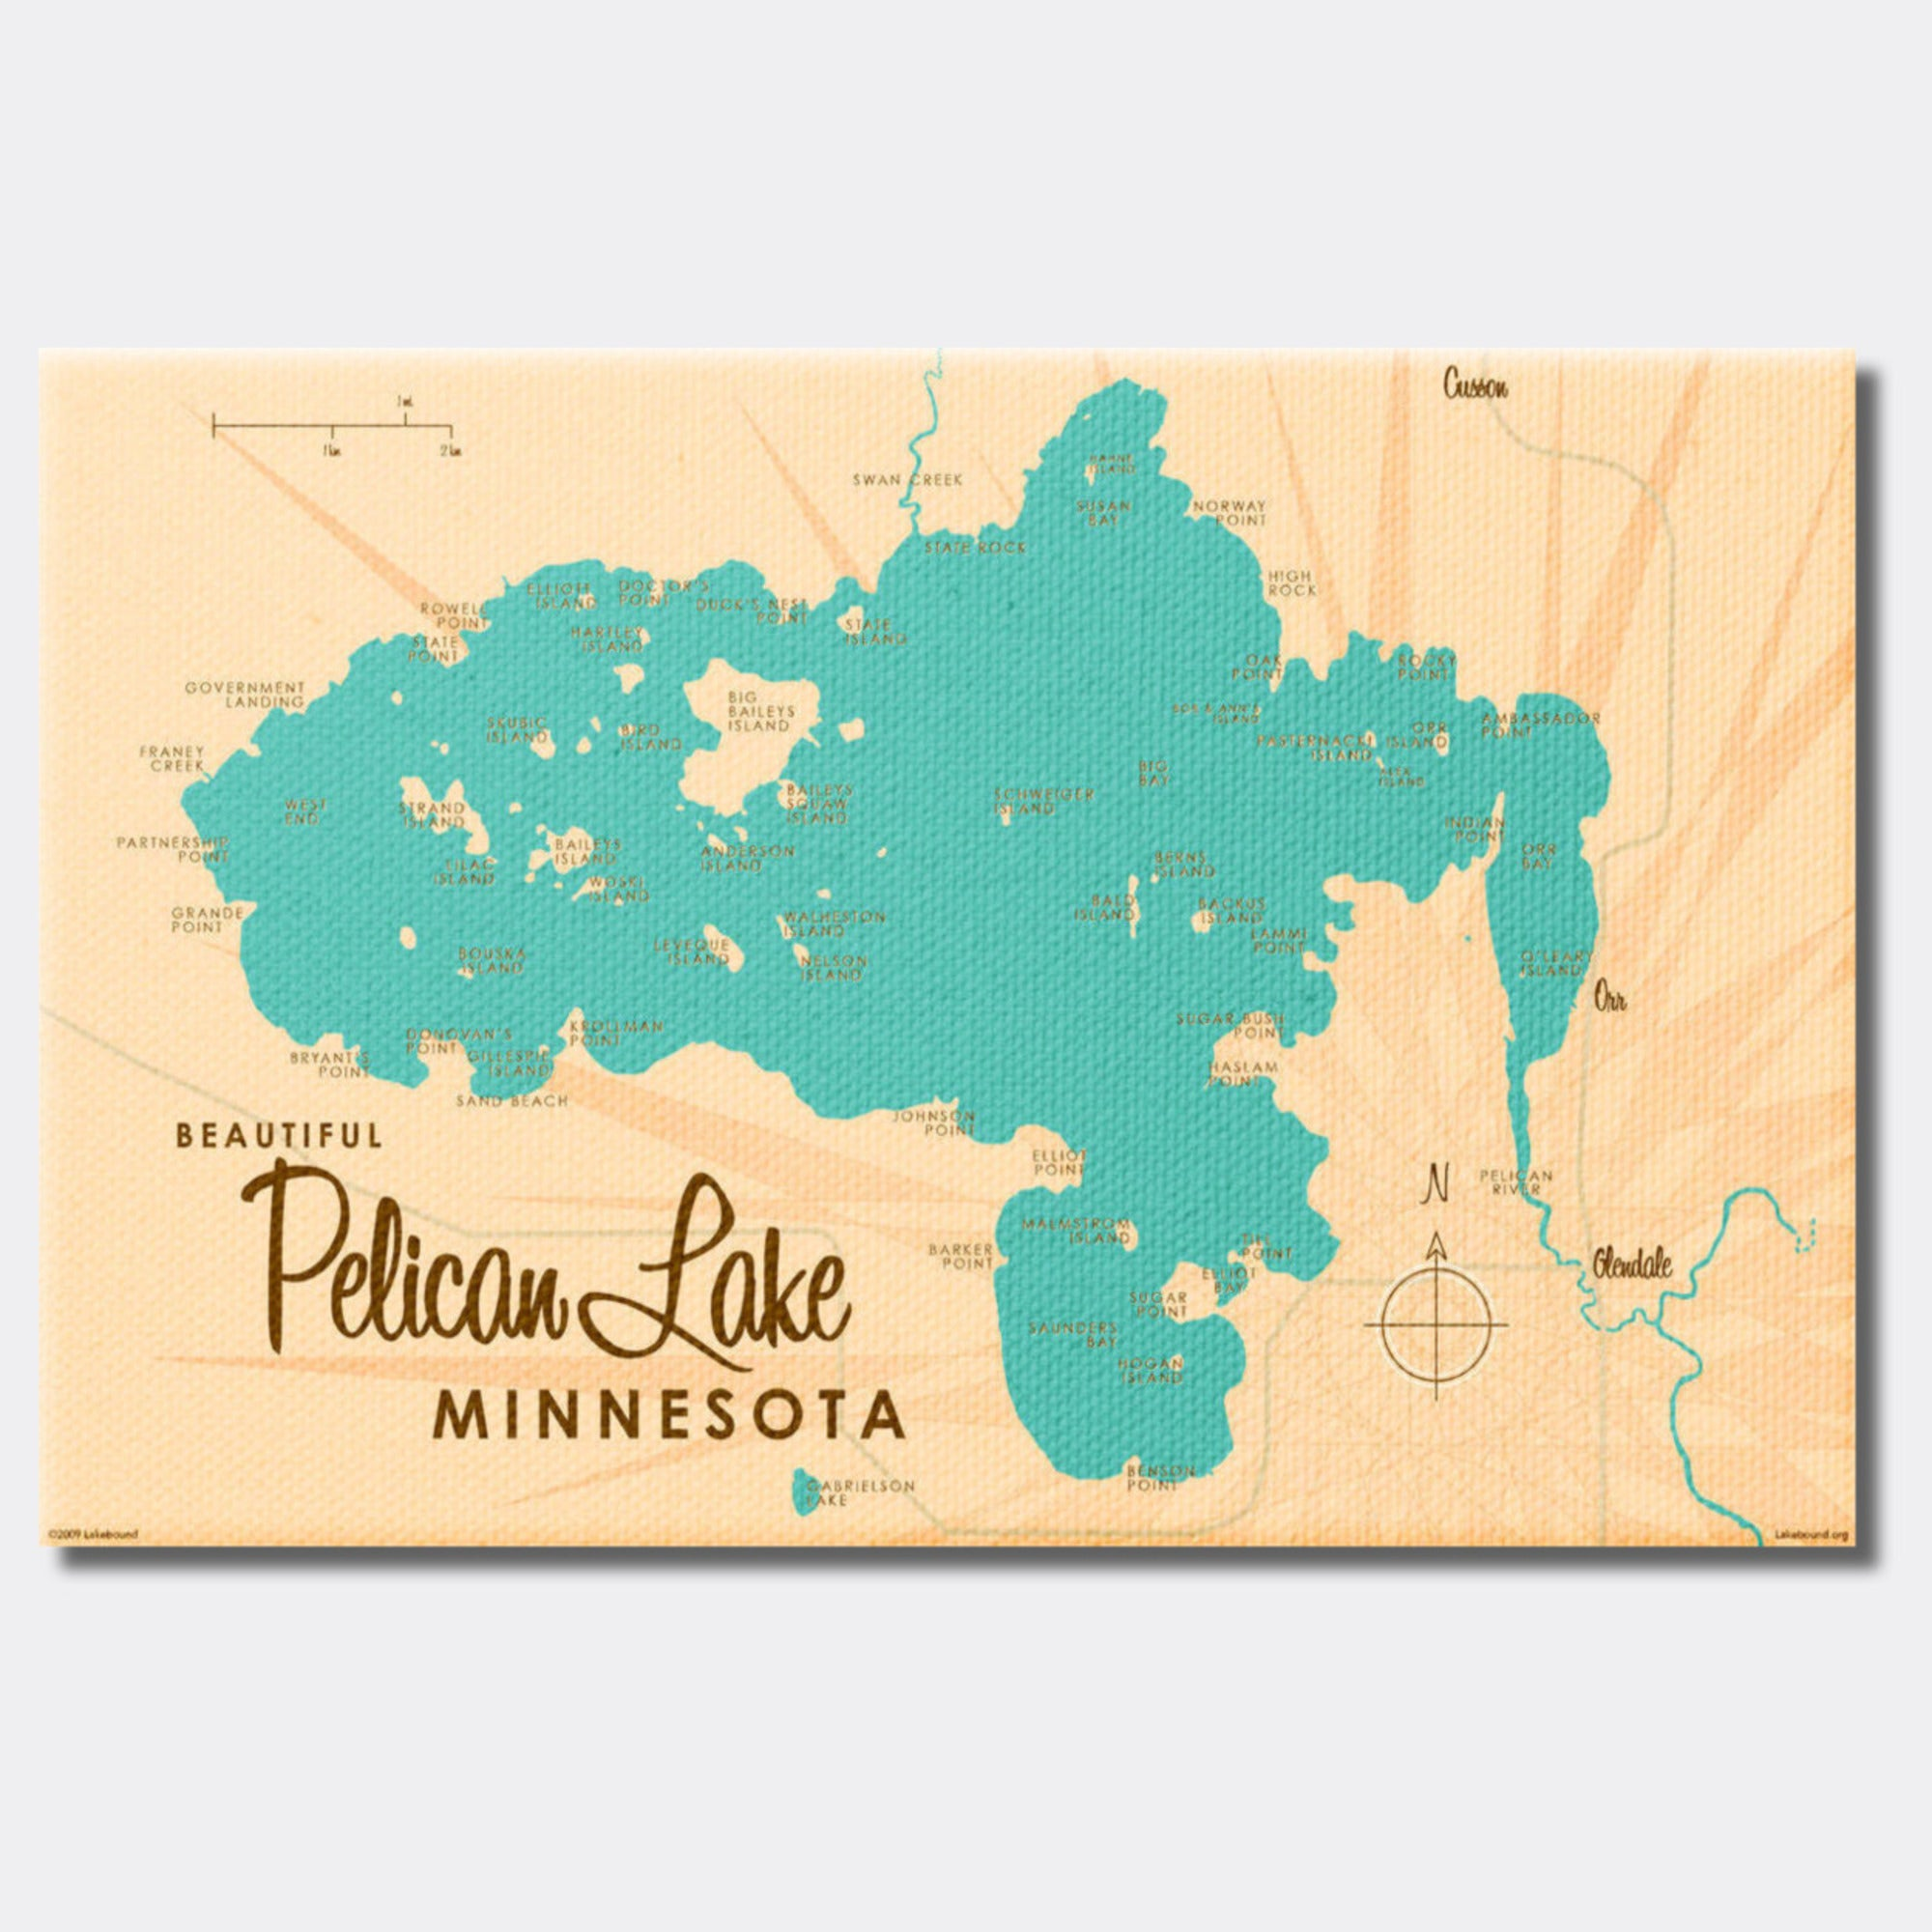 Pelican Lake St. Louis County Minnesota, Canvas Print